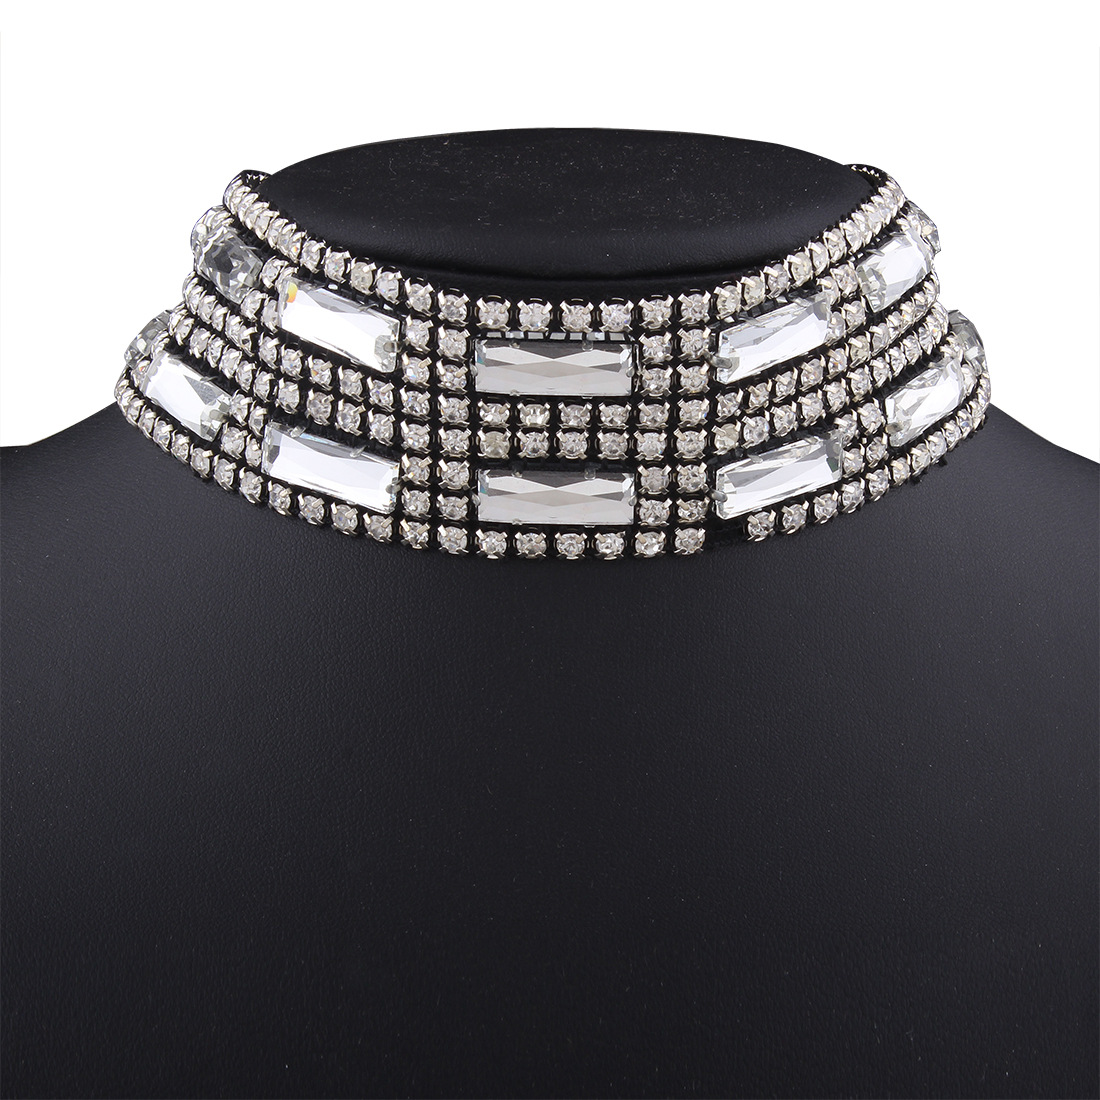 Occident and the United States alloy Diamond necklace (White K)NHNMD3778-White K